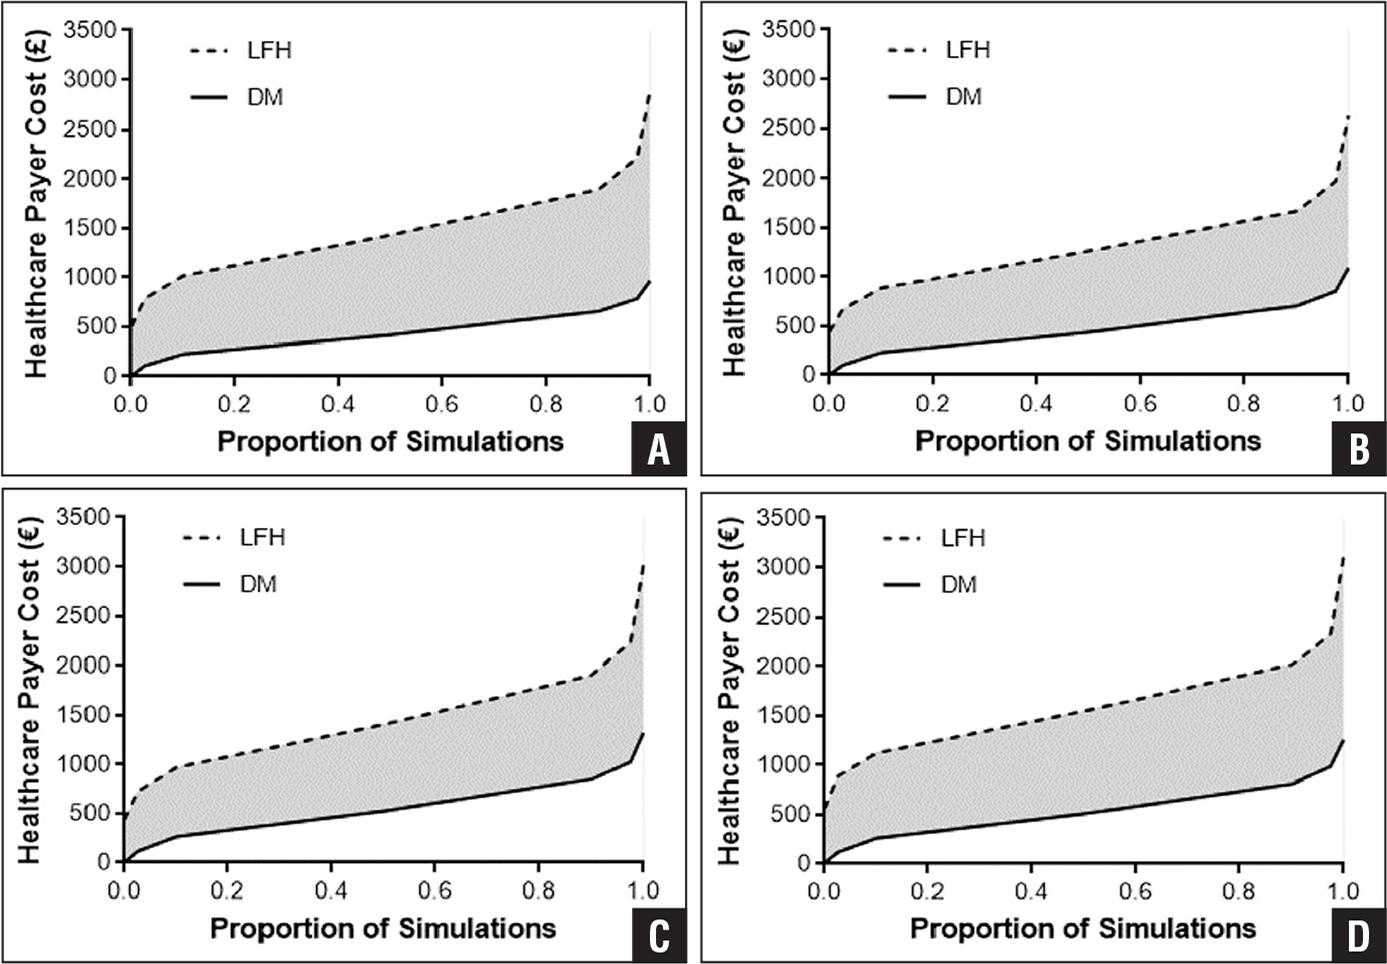 Graphs showing the cumulative health care costs associated with dual-mobility (DM) and large femoral head (LFH) constructs over 3 years following revision total hip arthroplasty in the United Kingdom (A), Germany (B), Italy (C), and Spain (D). Values derived from 1000 simulations using probabilistic sensitivity analysis, which accounts for combined uncertainty across all model parameters. Shaded area indicates the incremental cost difference between DM and LFH constructs across all simulations.